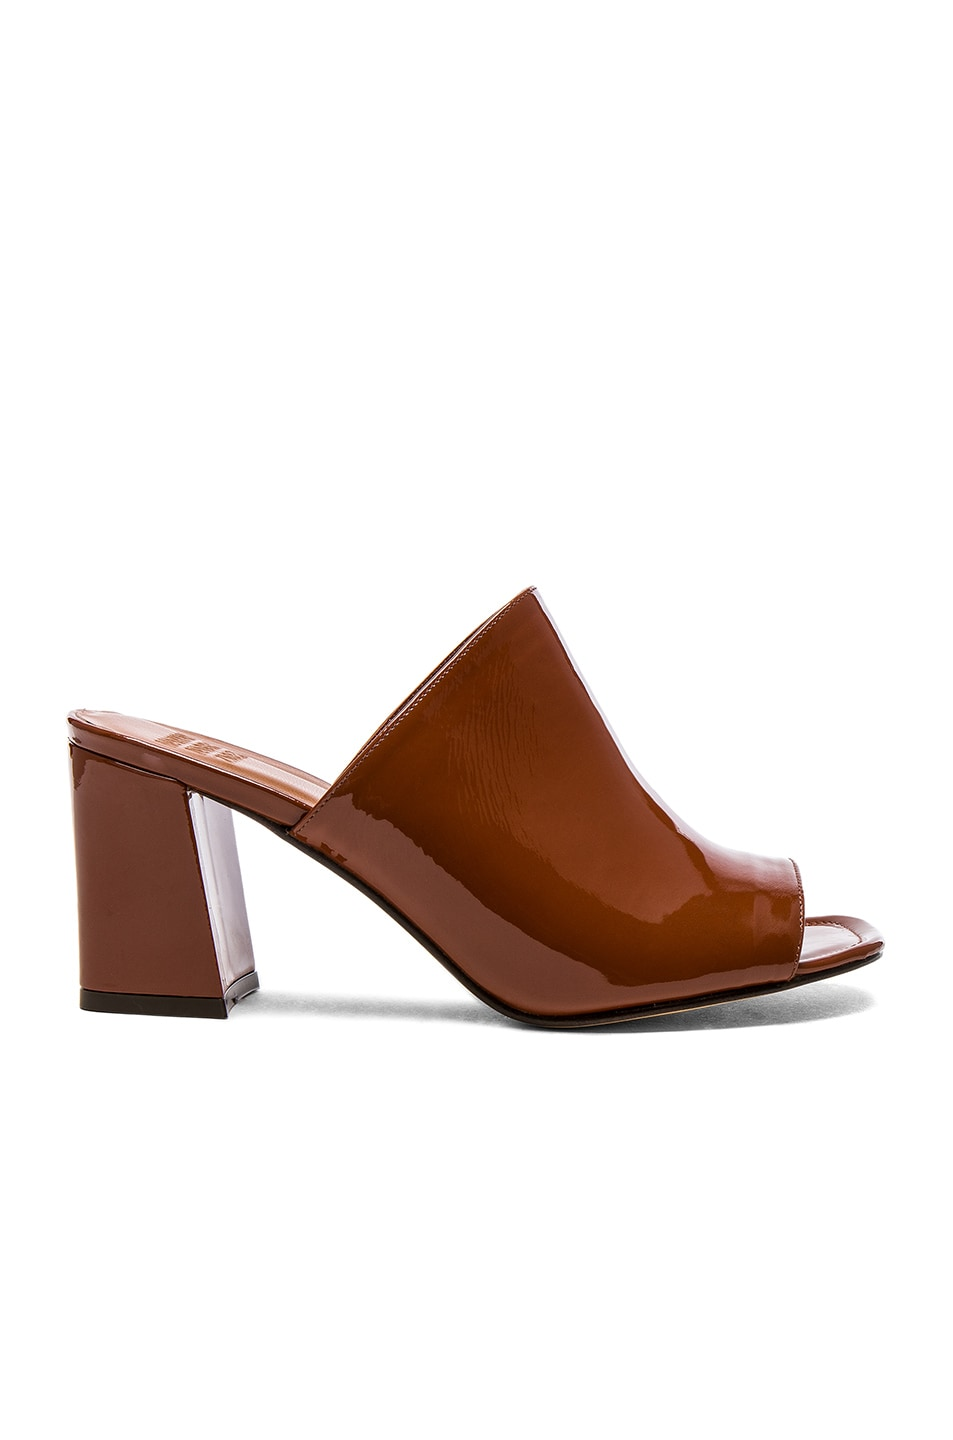 Image 1 of Maryam Nassir Zadeh for FWRD Penelope Mule in Caramel Sparkle